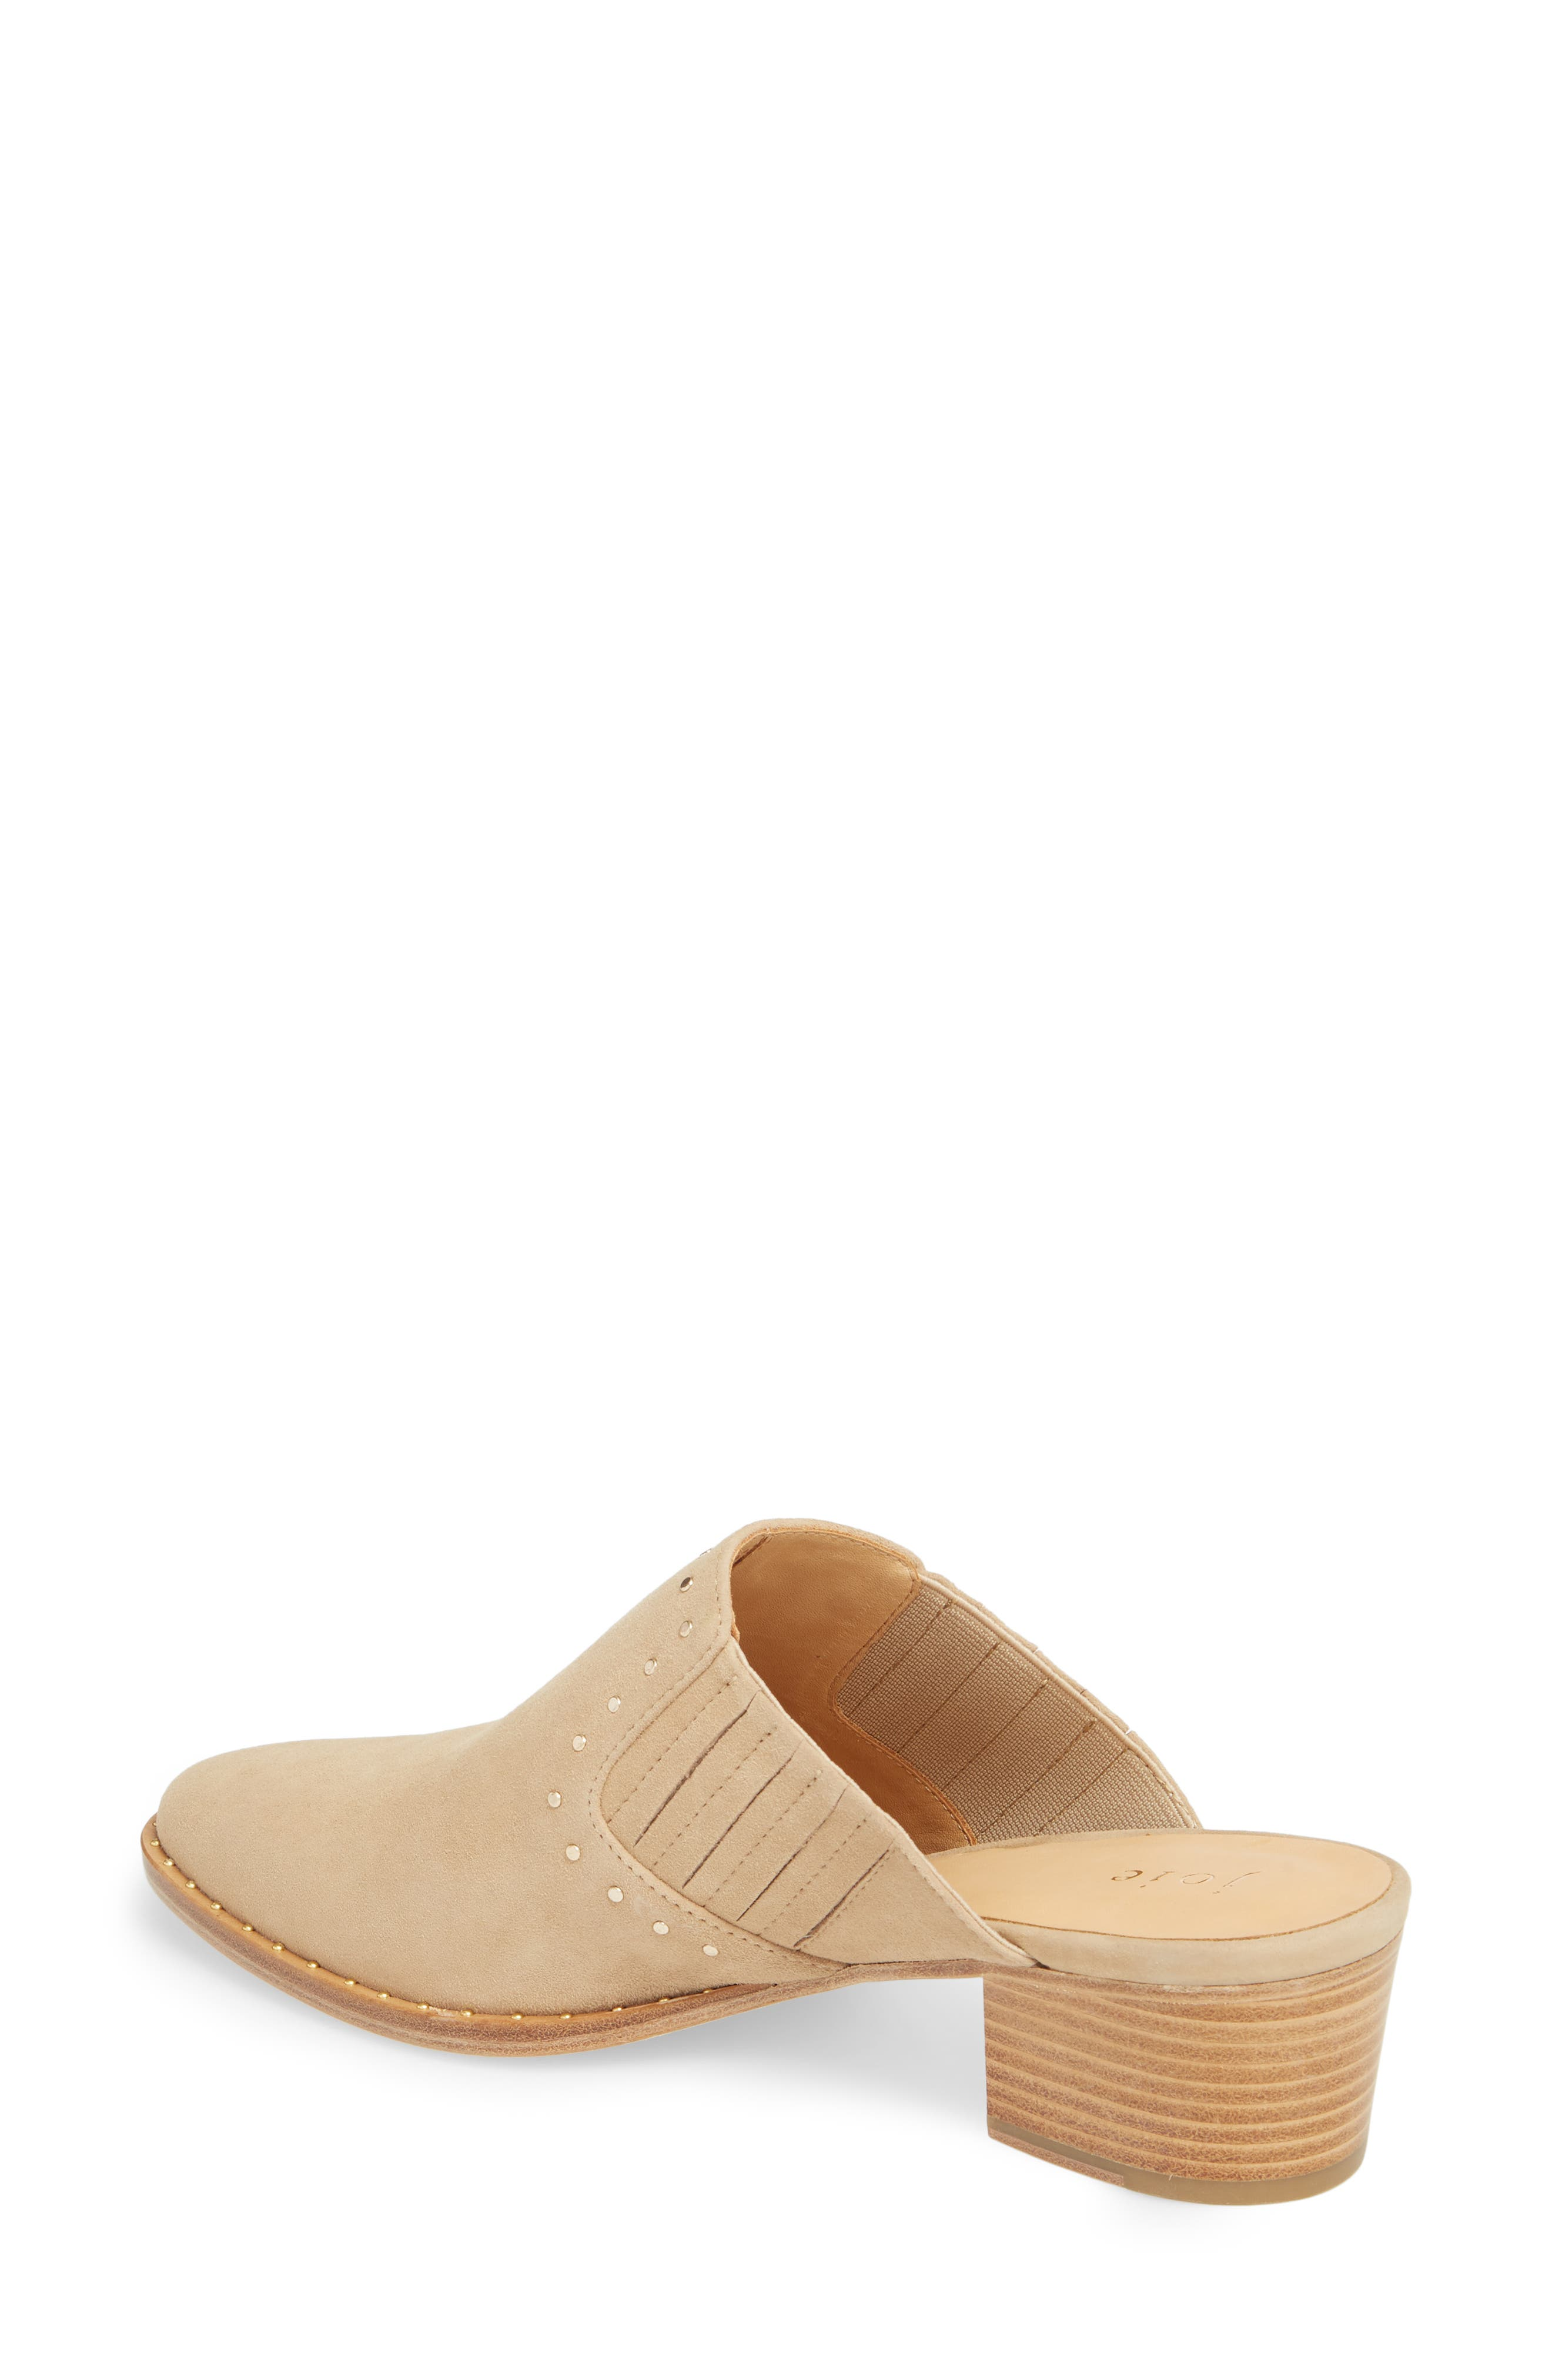 Fayla Studded Mule,                             Alternate thumbnail 2, color,                             SAND